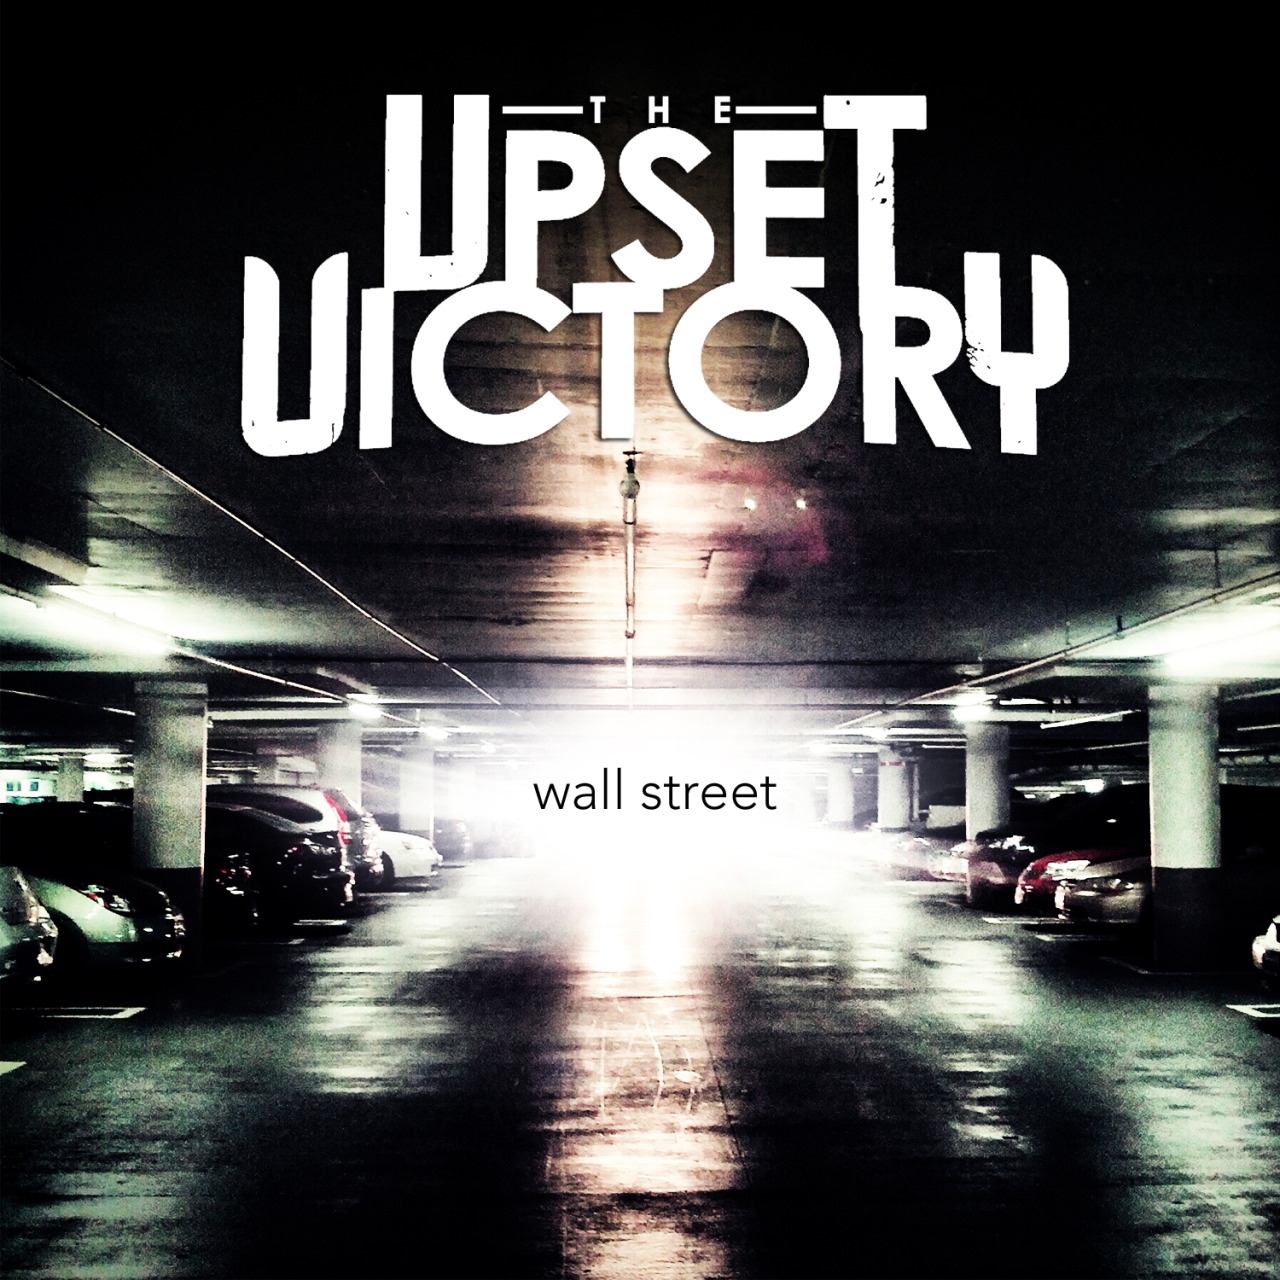 "Album announcement day…The Upset Victory presents our seventh studio release, the 'Wall Street' EP: 1. Fake This 2. Sellin' My Soul 3. In Our Hands 4. Liars & Letdowns [Bonus track] + ""Fake This"" music video Due out Tuesday, January 29th! We'd like to thank YOU, Starlight Studios, Nuance Media, Chris Schmidt, & all of our family & friends! Starting off 2013 the right way…w/ more new music for ya!"